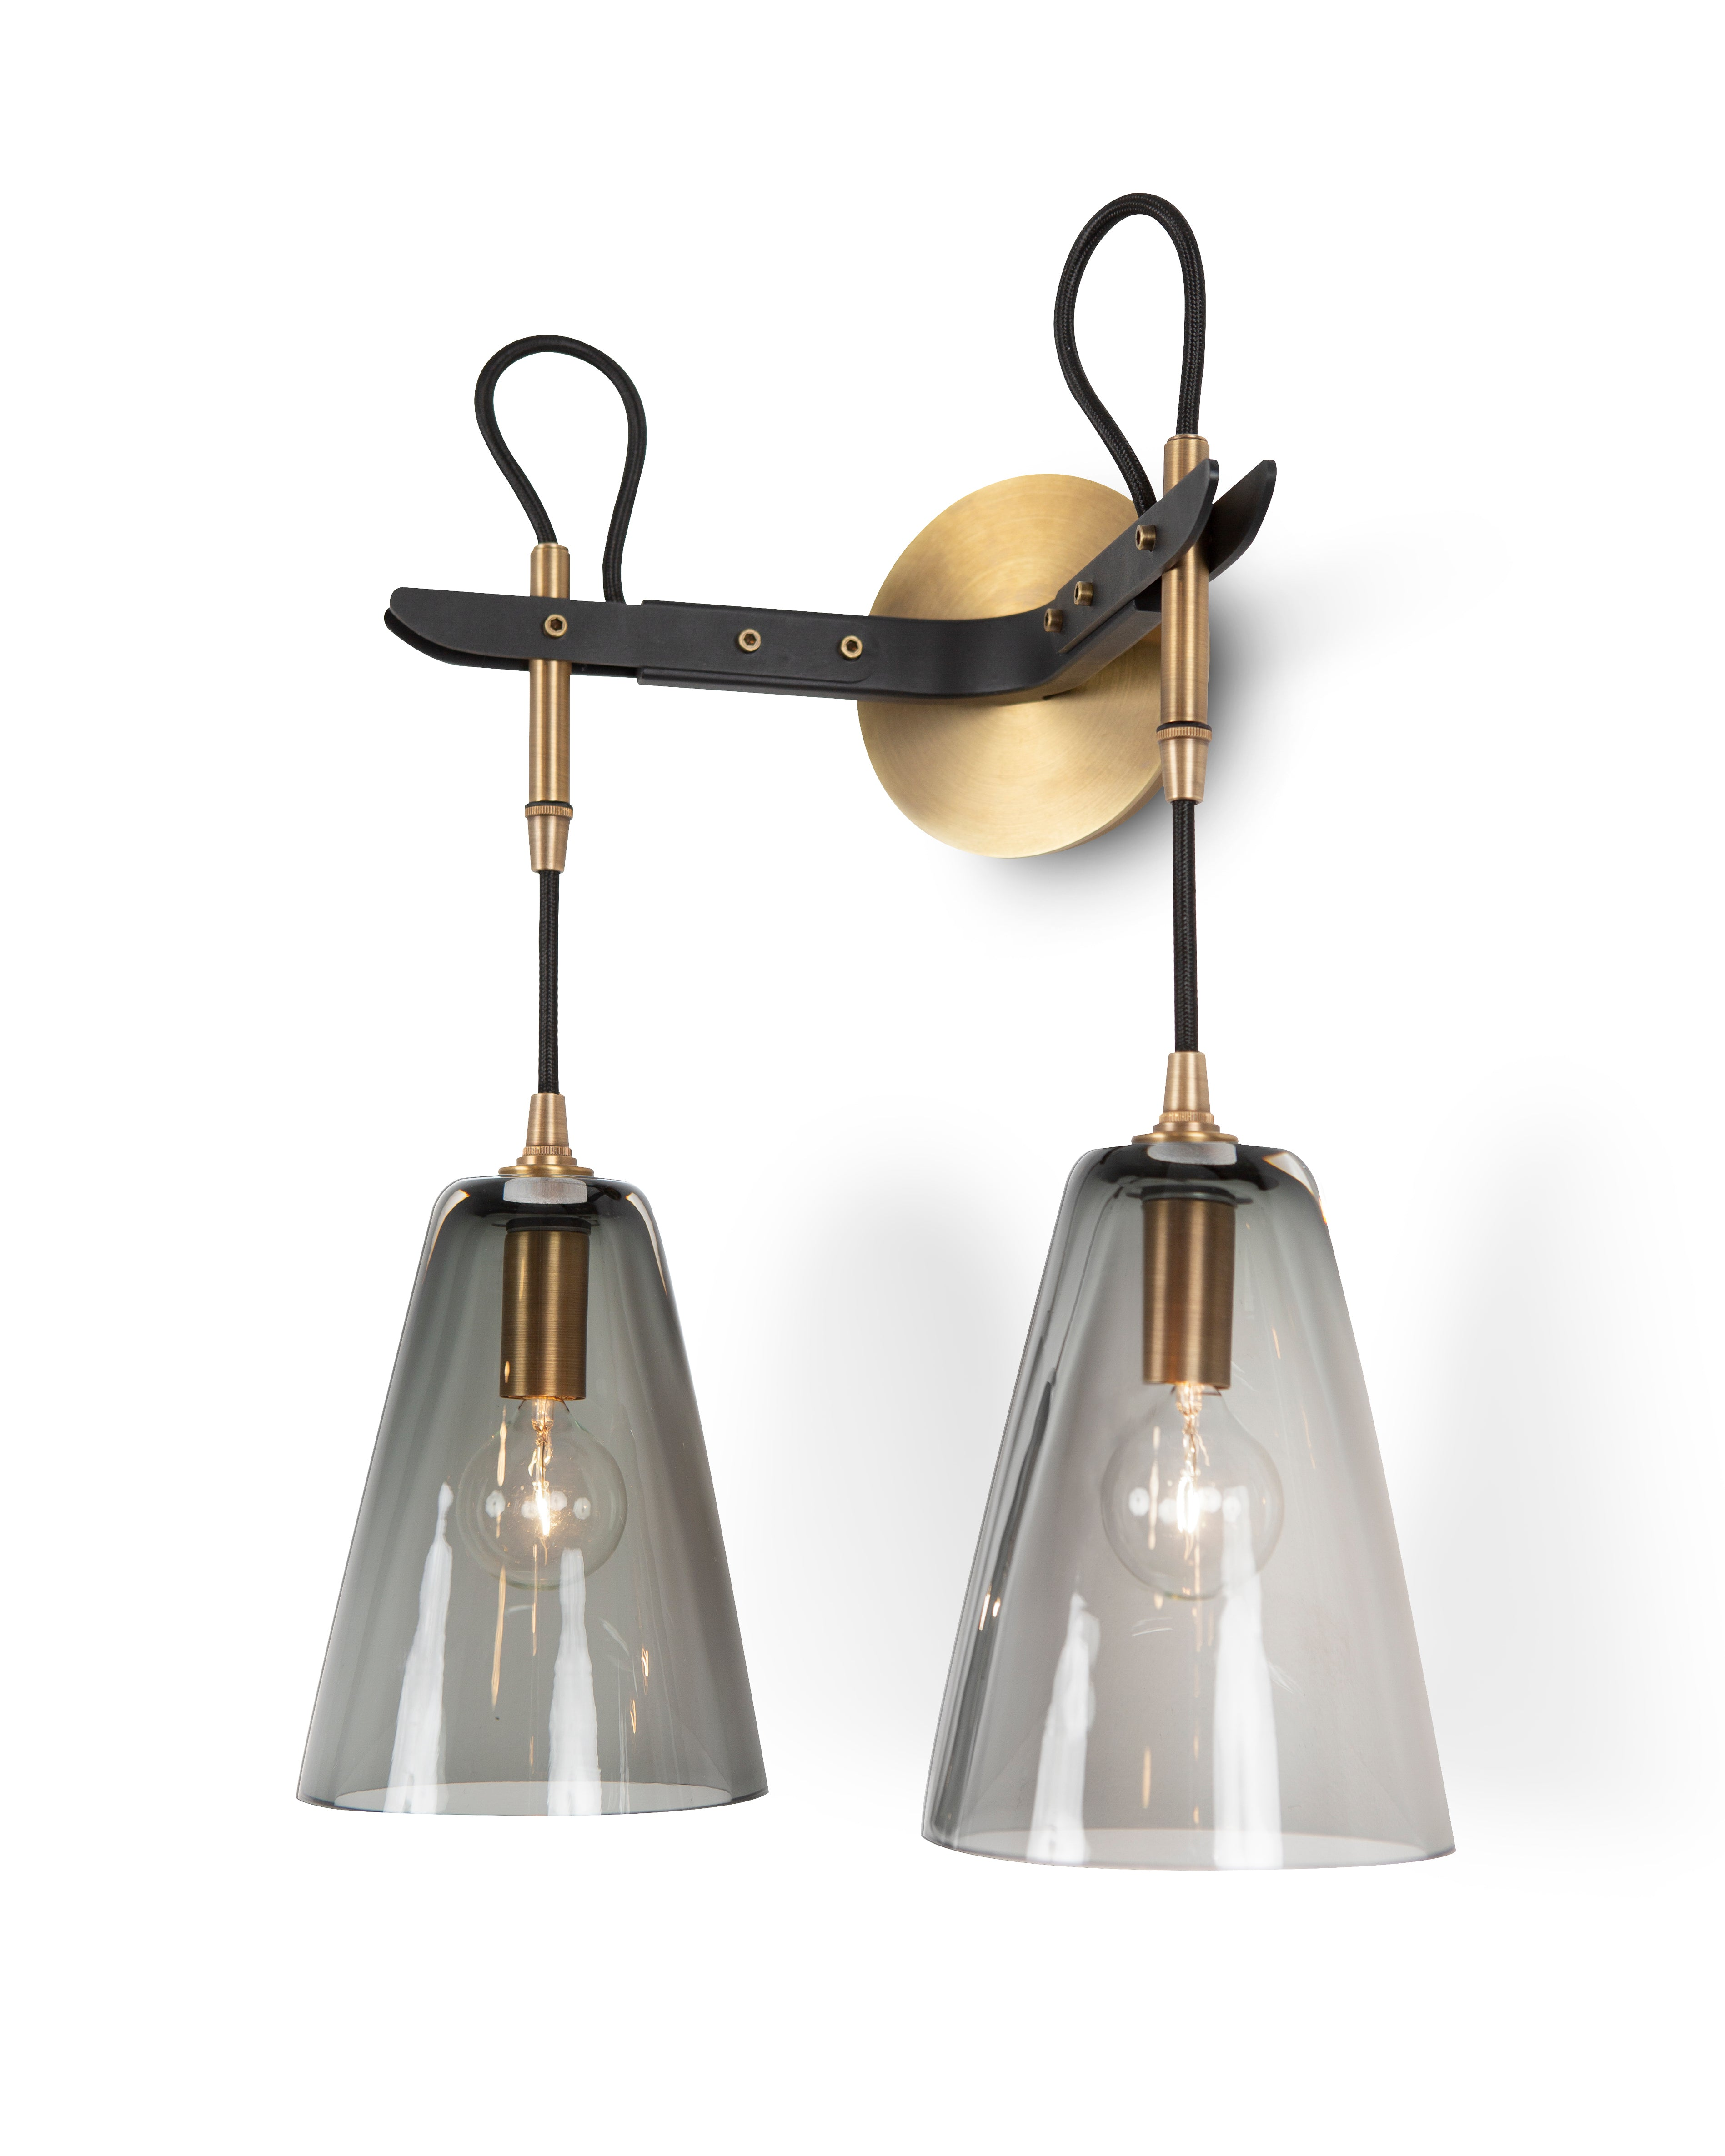 Vail Double Sconce in Light Antique Brass and Patinated Steel with Smoke Glass